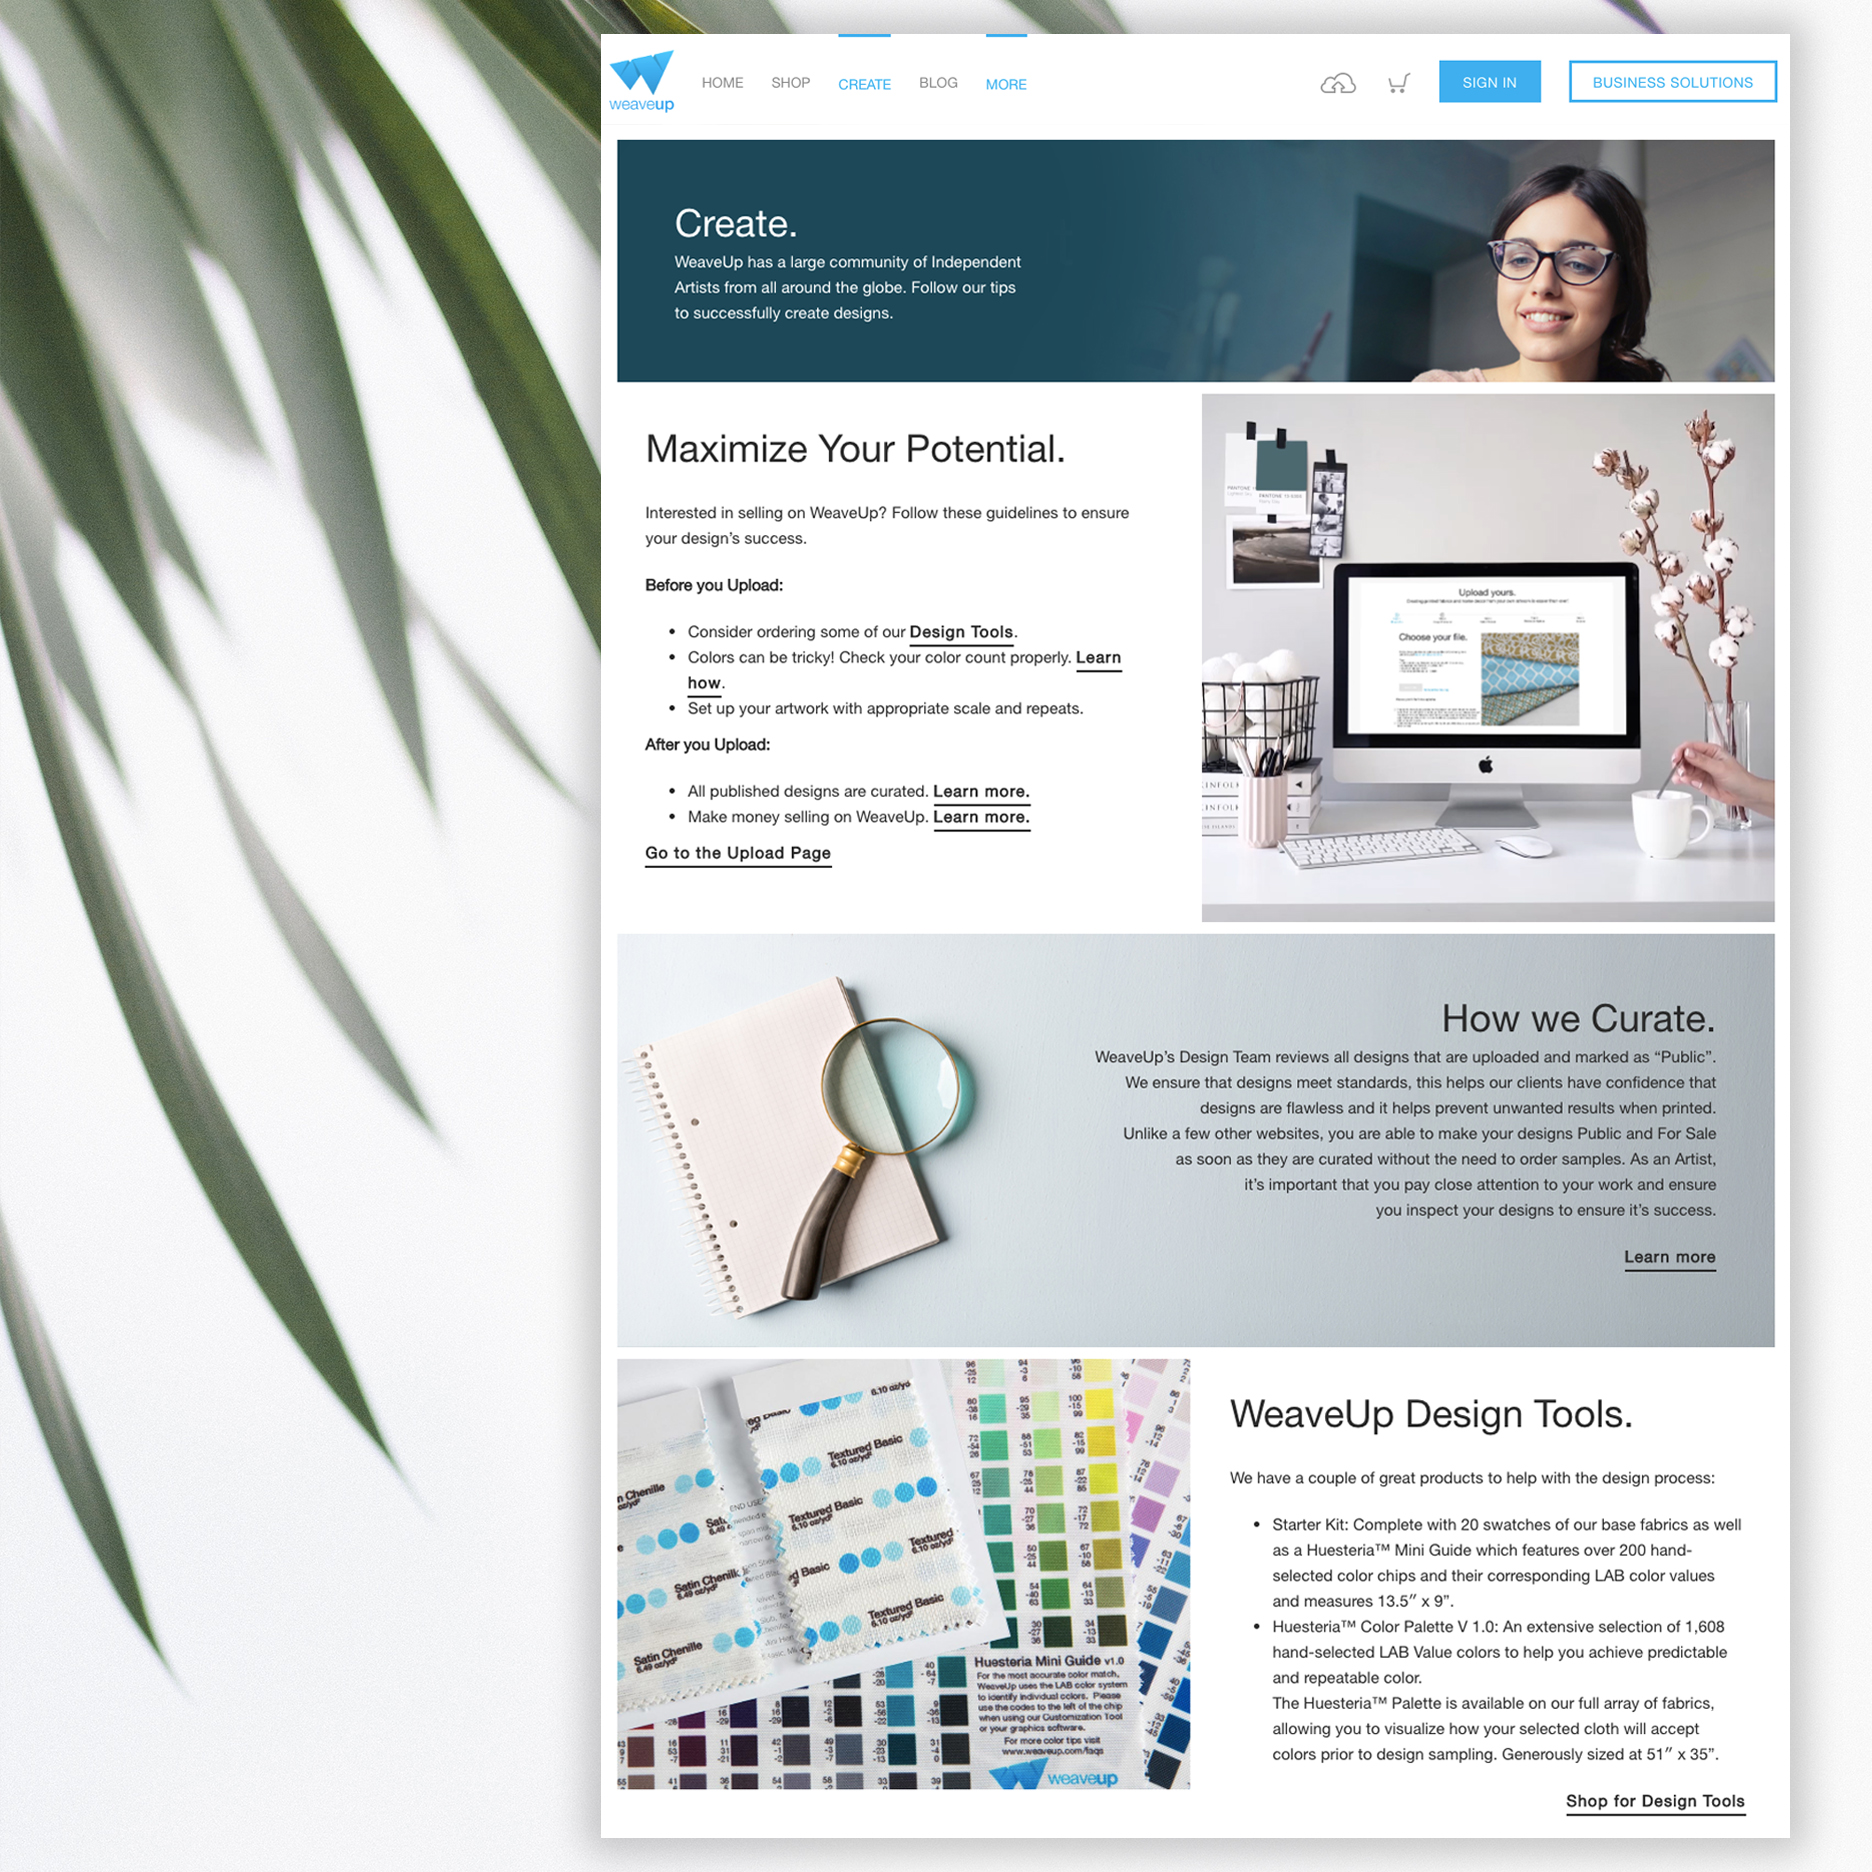 "Content for designers was scattered throughout the website, making it difficult to locate information. By crafting the "" create "" page, we compiled all of the information a designer may want to know before uploading their designs. From design tips, to policies and tools."